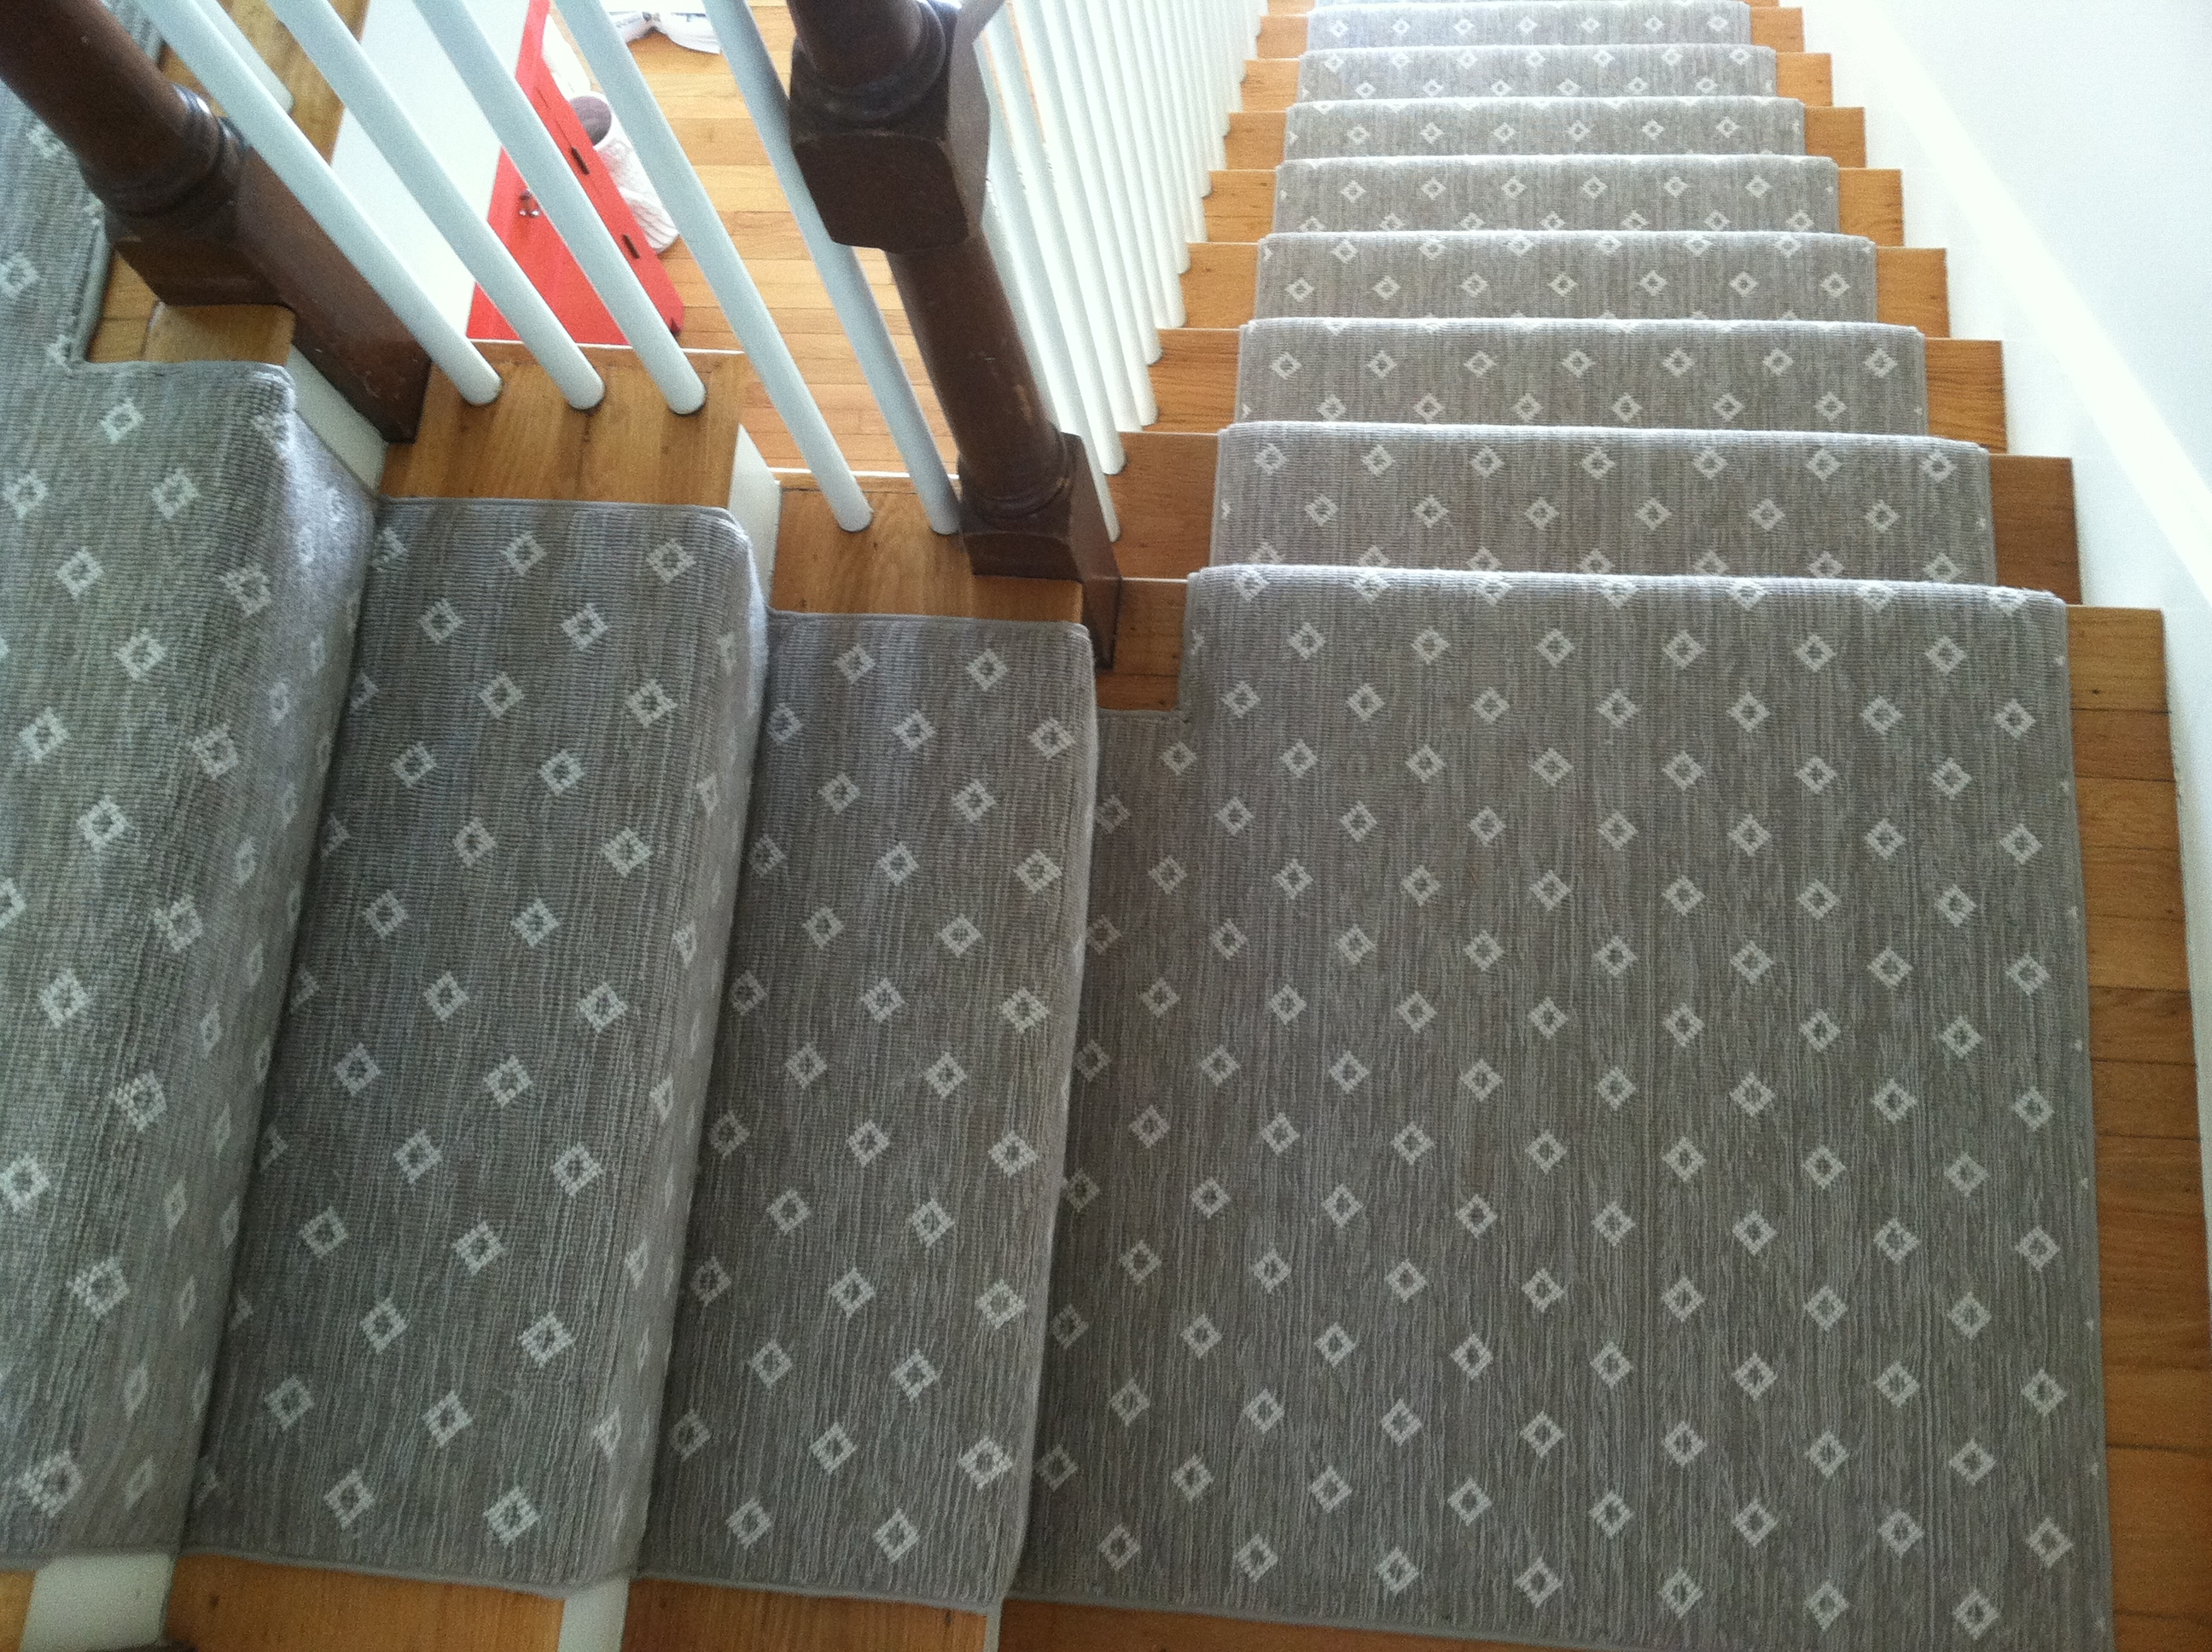 Patterned Carpet The Dos Donts Carpet Workroom | Leopard Carpet On Stairs | Diamond Pattern | Fawn | Stark | Carpeted | Striped